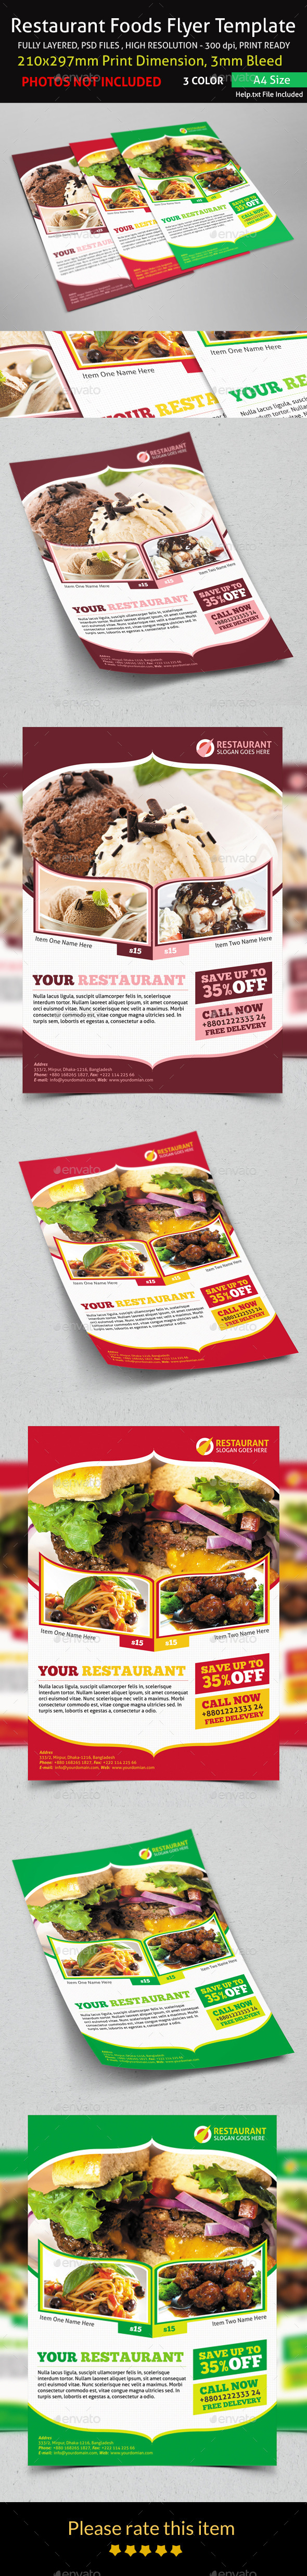 GraphicRiver Restaurant Foods Flyer Template 9186537